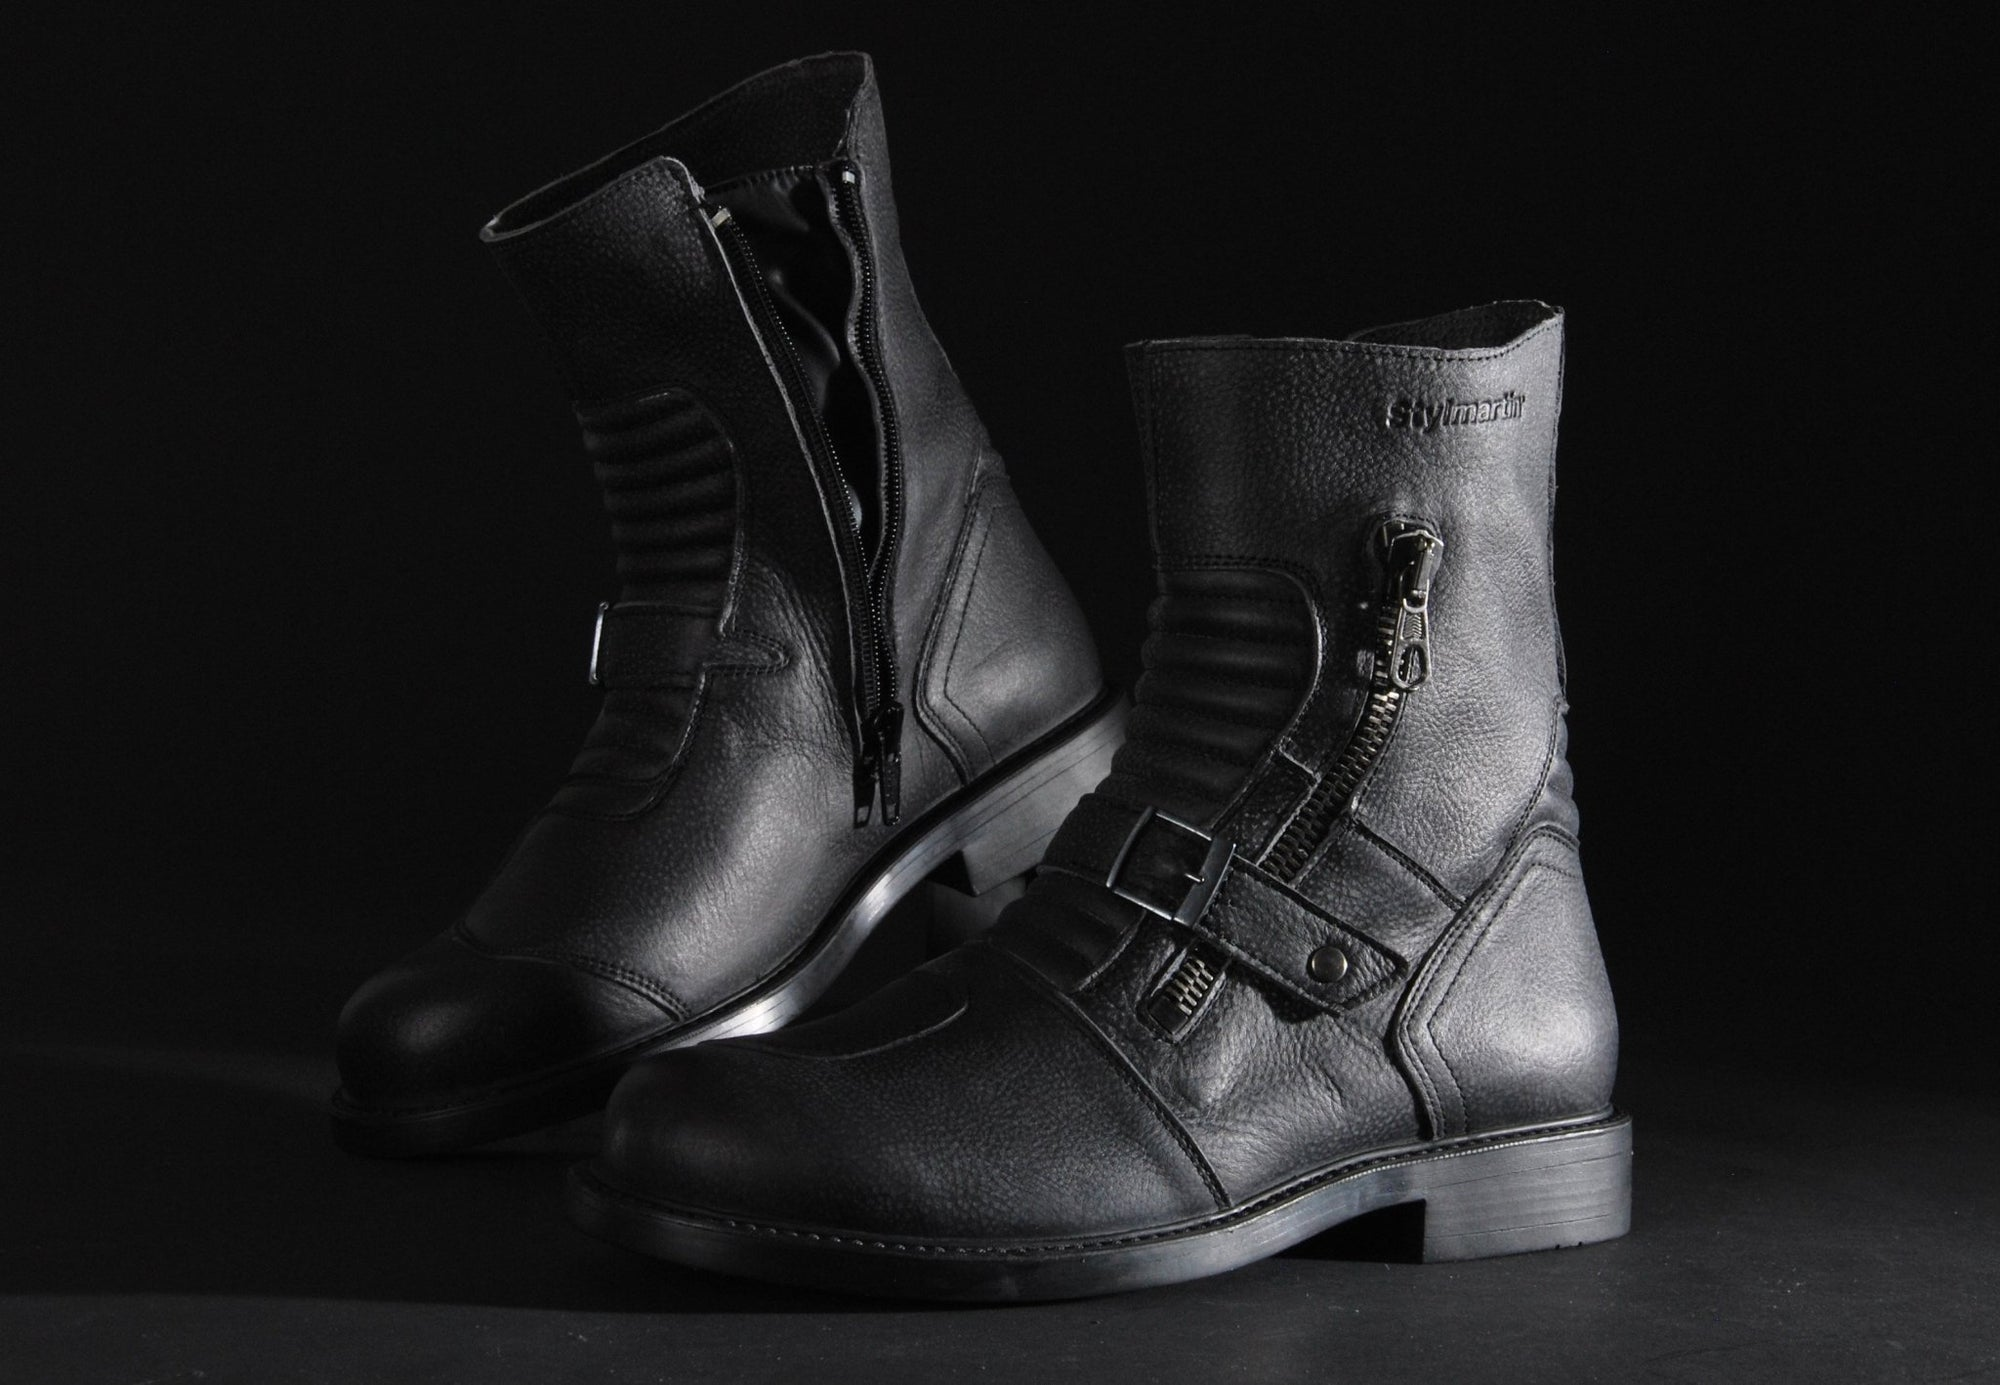 Stylmartin - Stylmartin Cruise WP Urban in Black - Boots - Salt Flats Clothing